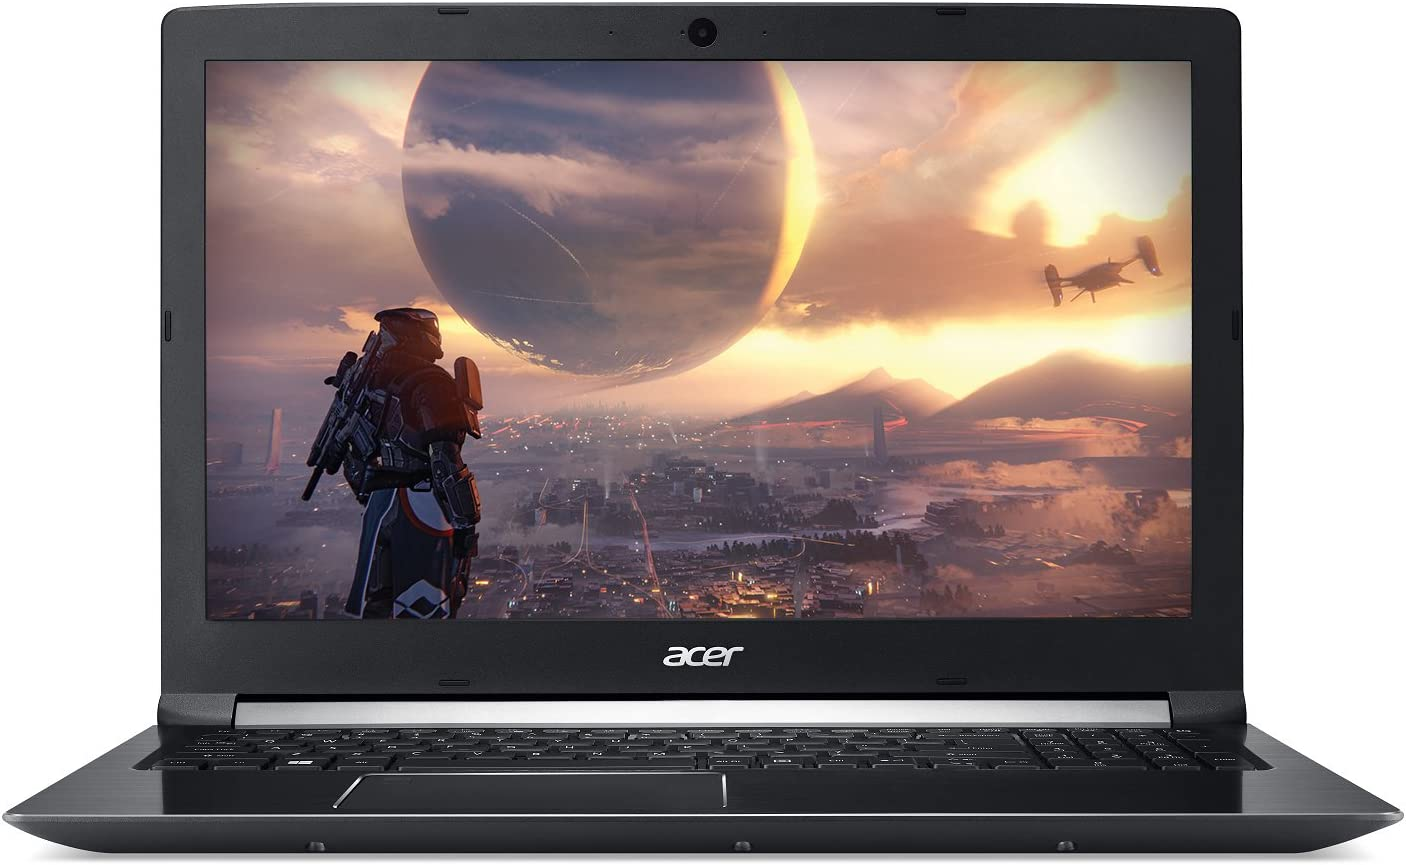 "Acer Aspire 7 Casual Gaming Laptop, 15.6"" Full HD IPS Display, Intel 6-Core i7-8750H, NVIDIA GeForce GTX 1050Ti 4GB, 8GB DDR4, 128GB SSD + 1TB HDD, Fingerprint Reader, Windows 10 64bit, A715-72G-71CT"